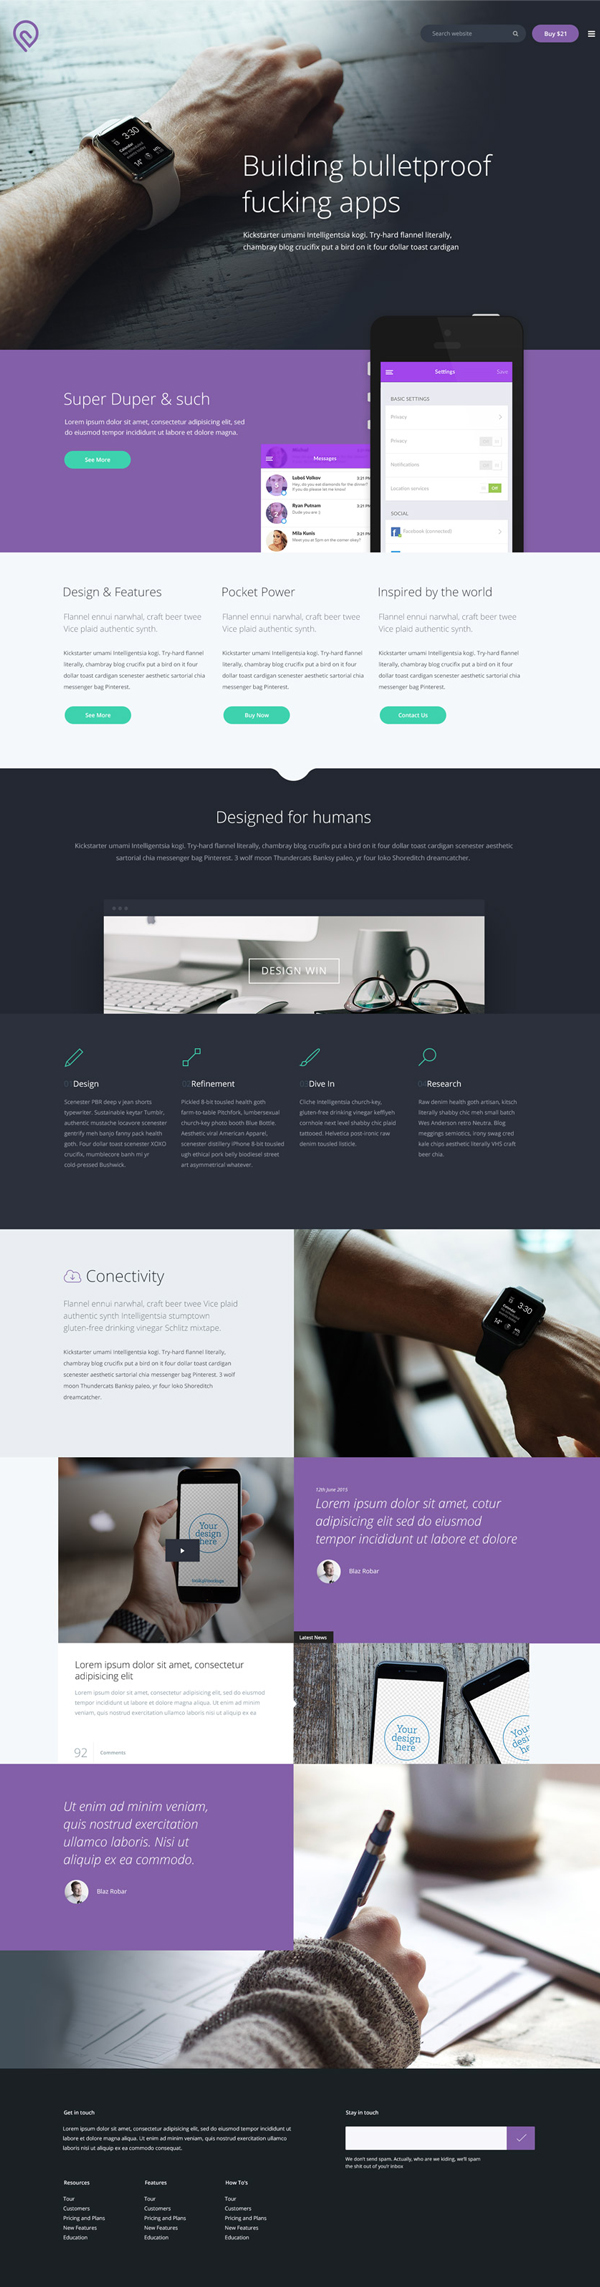 12 new free psd website templates freebies graphic design junction free business website template psd wajeb Choice Image